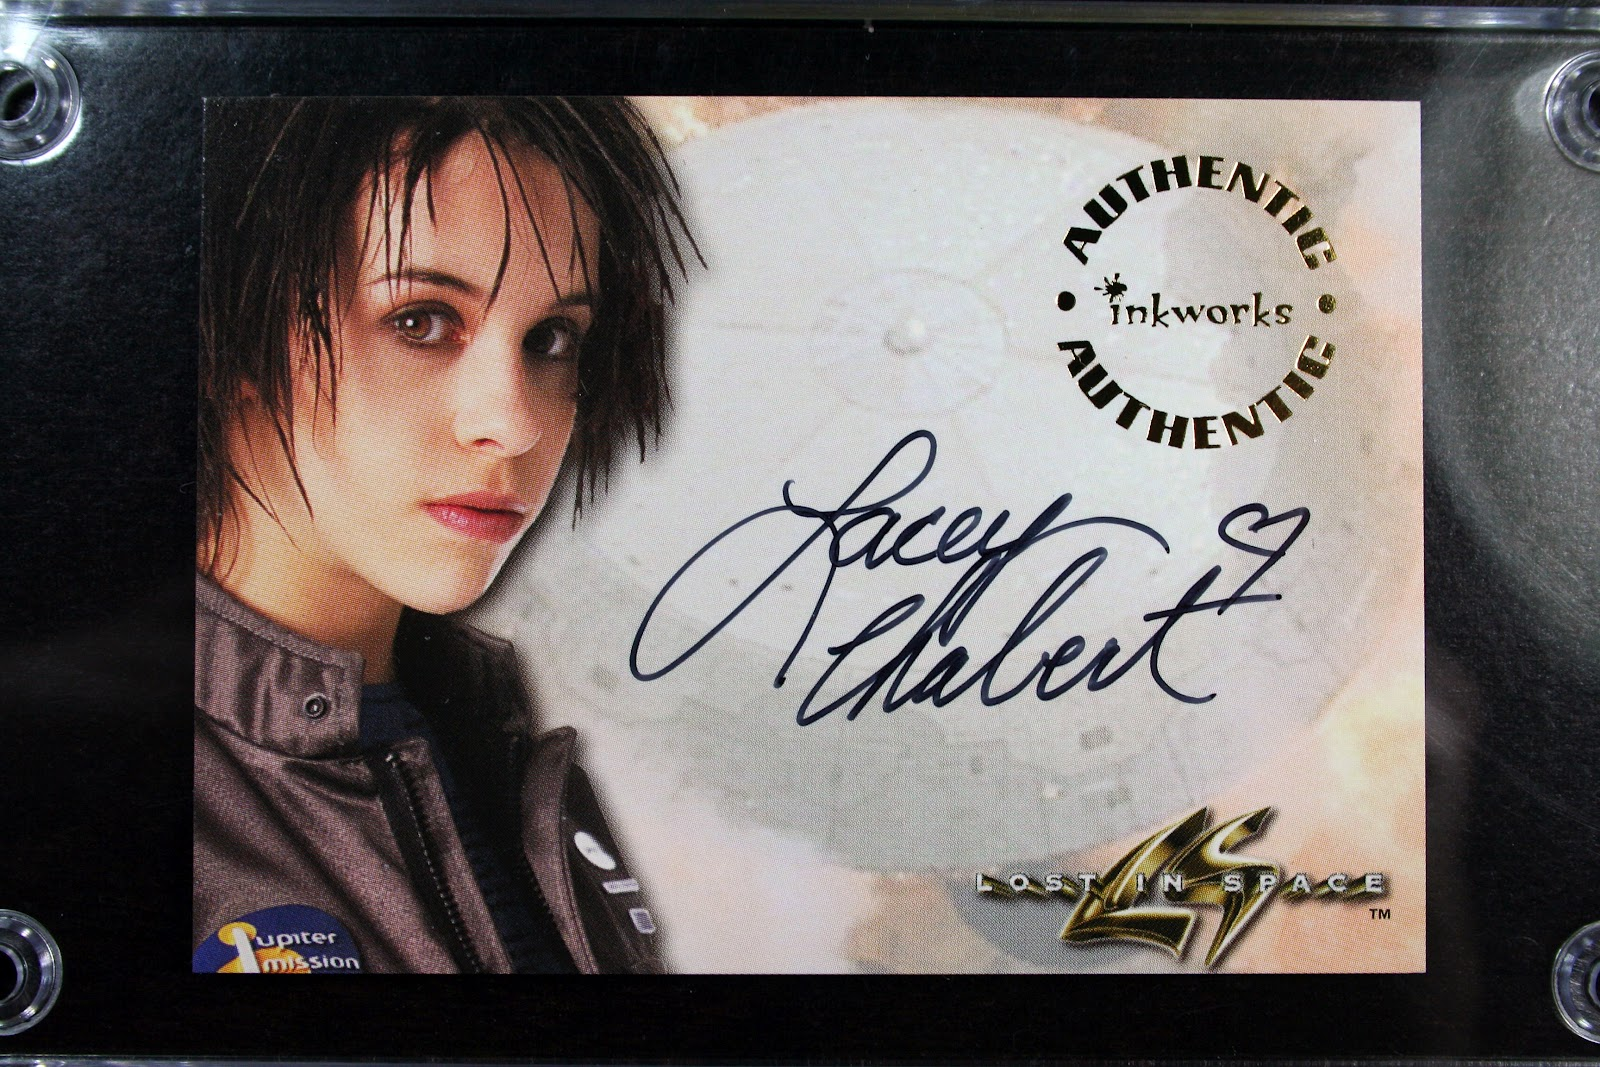 1998 autographed a2 lacey chabert lost in space movie